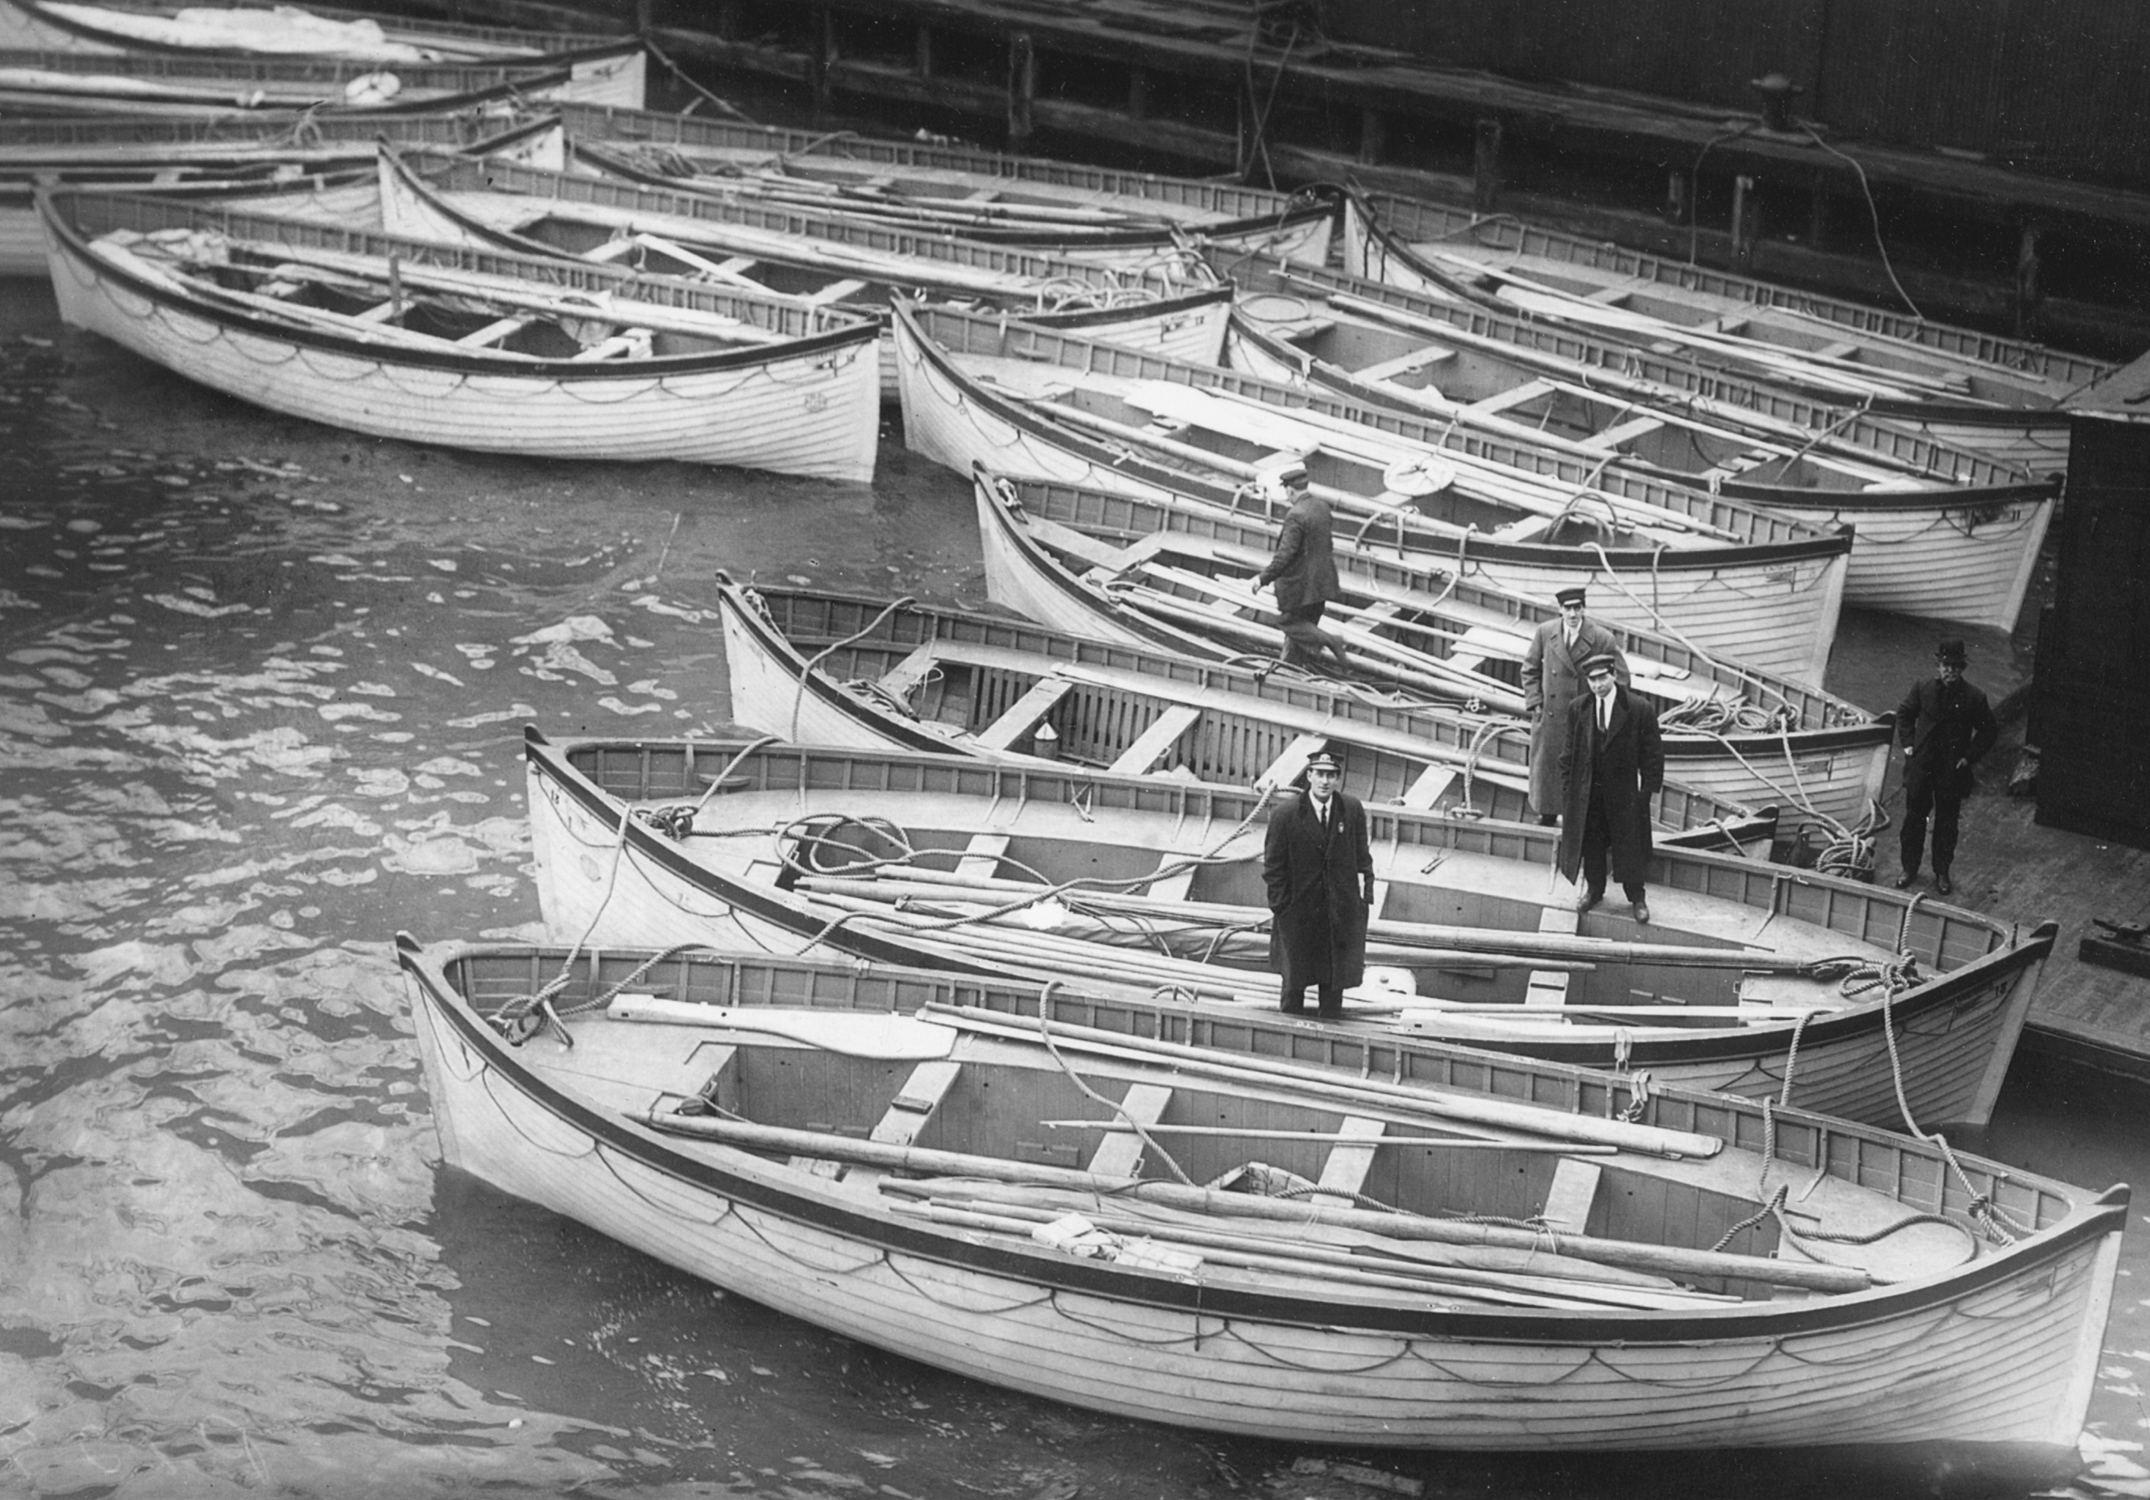 Titanic's_lifeboats_in_New_York